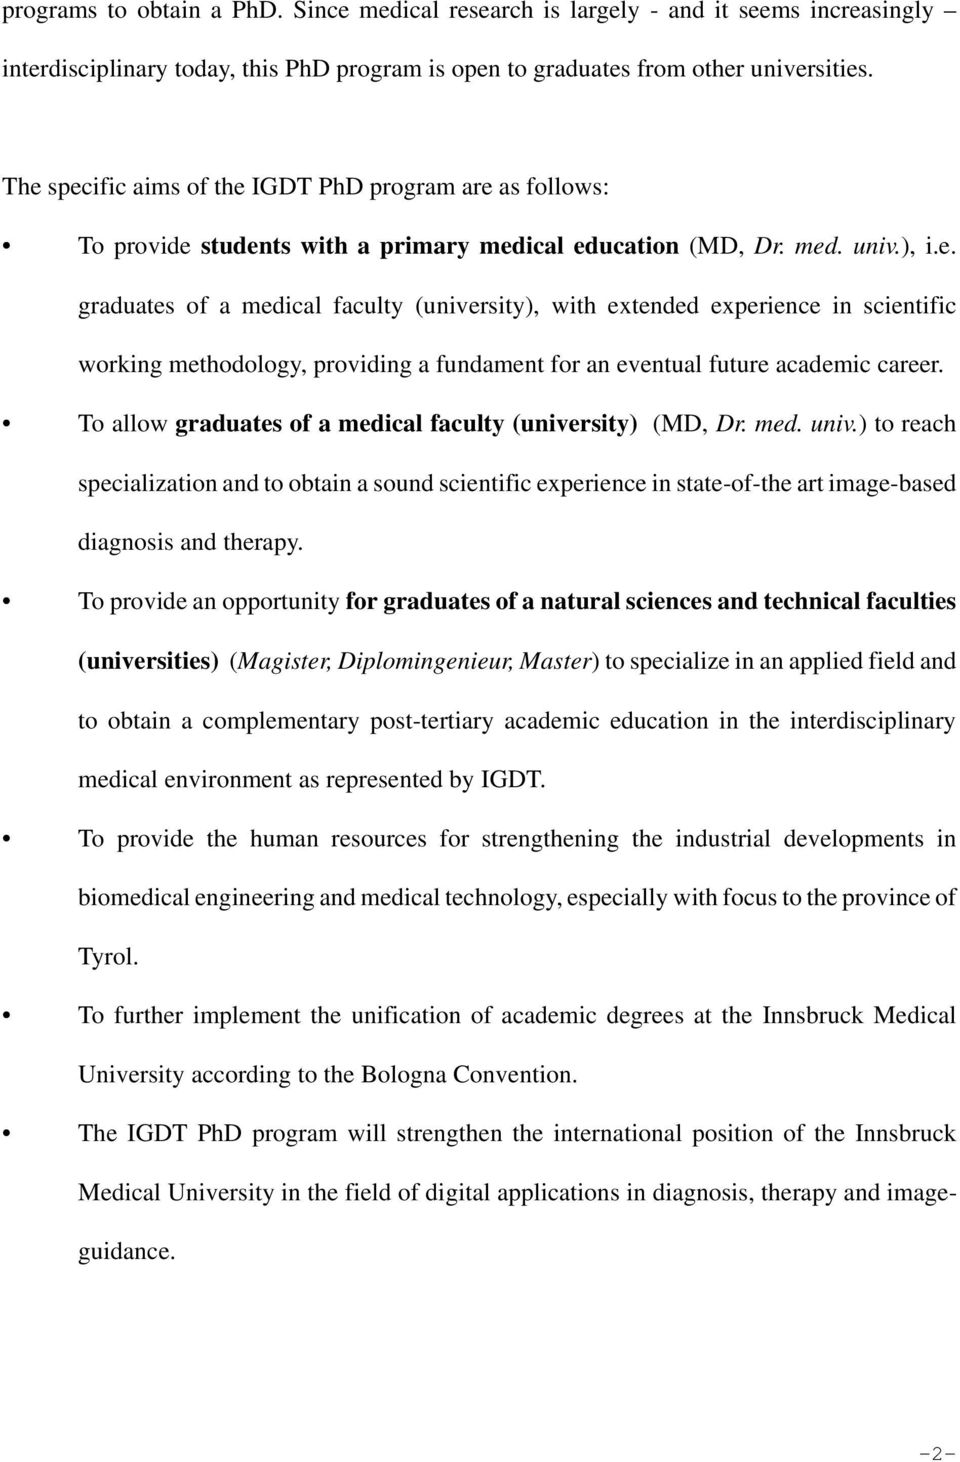 To allow graduates of a medical faculty (university) (MD, Dr. med. univ.) to reach specialization and to obtain a sound scientific experience in state-of-the art image-based diagnosis and therapy.